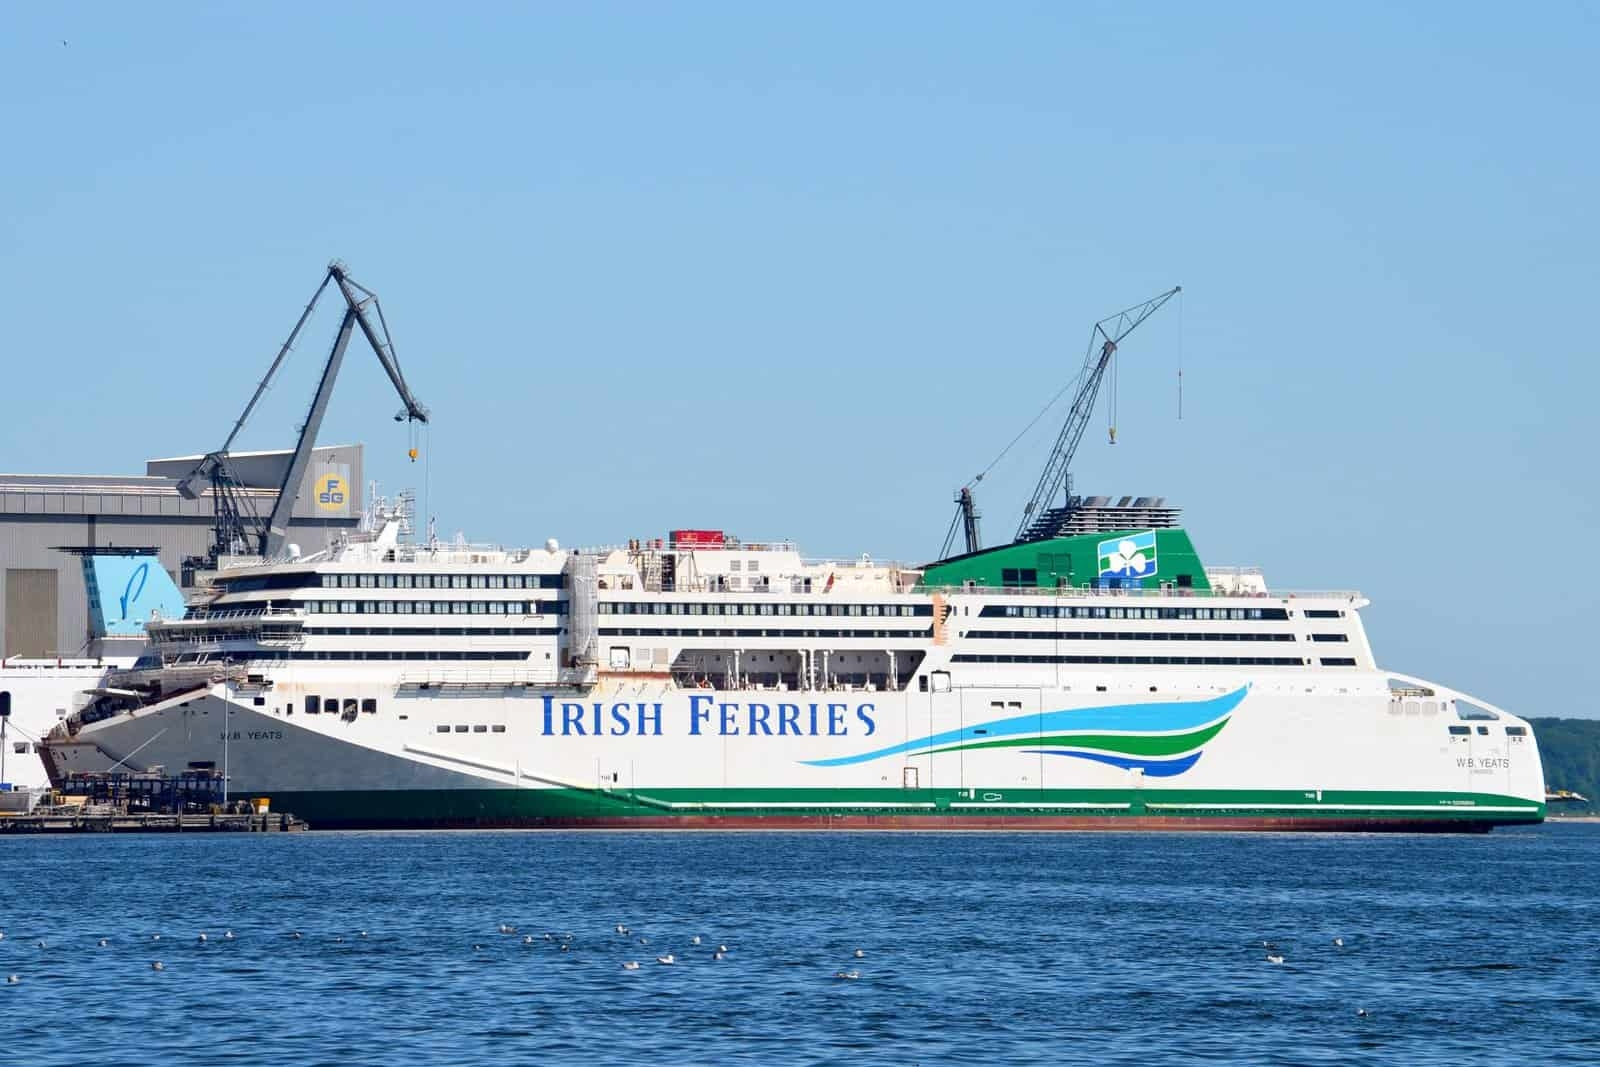 8e65a3256b Irish Ferries cancels all summer sailings of new Ireland to France flagship  W.B. YEATS - NI Ferry Site